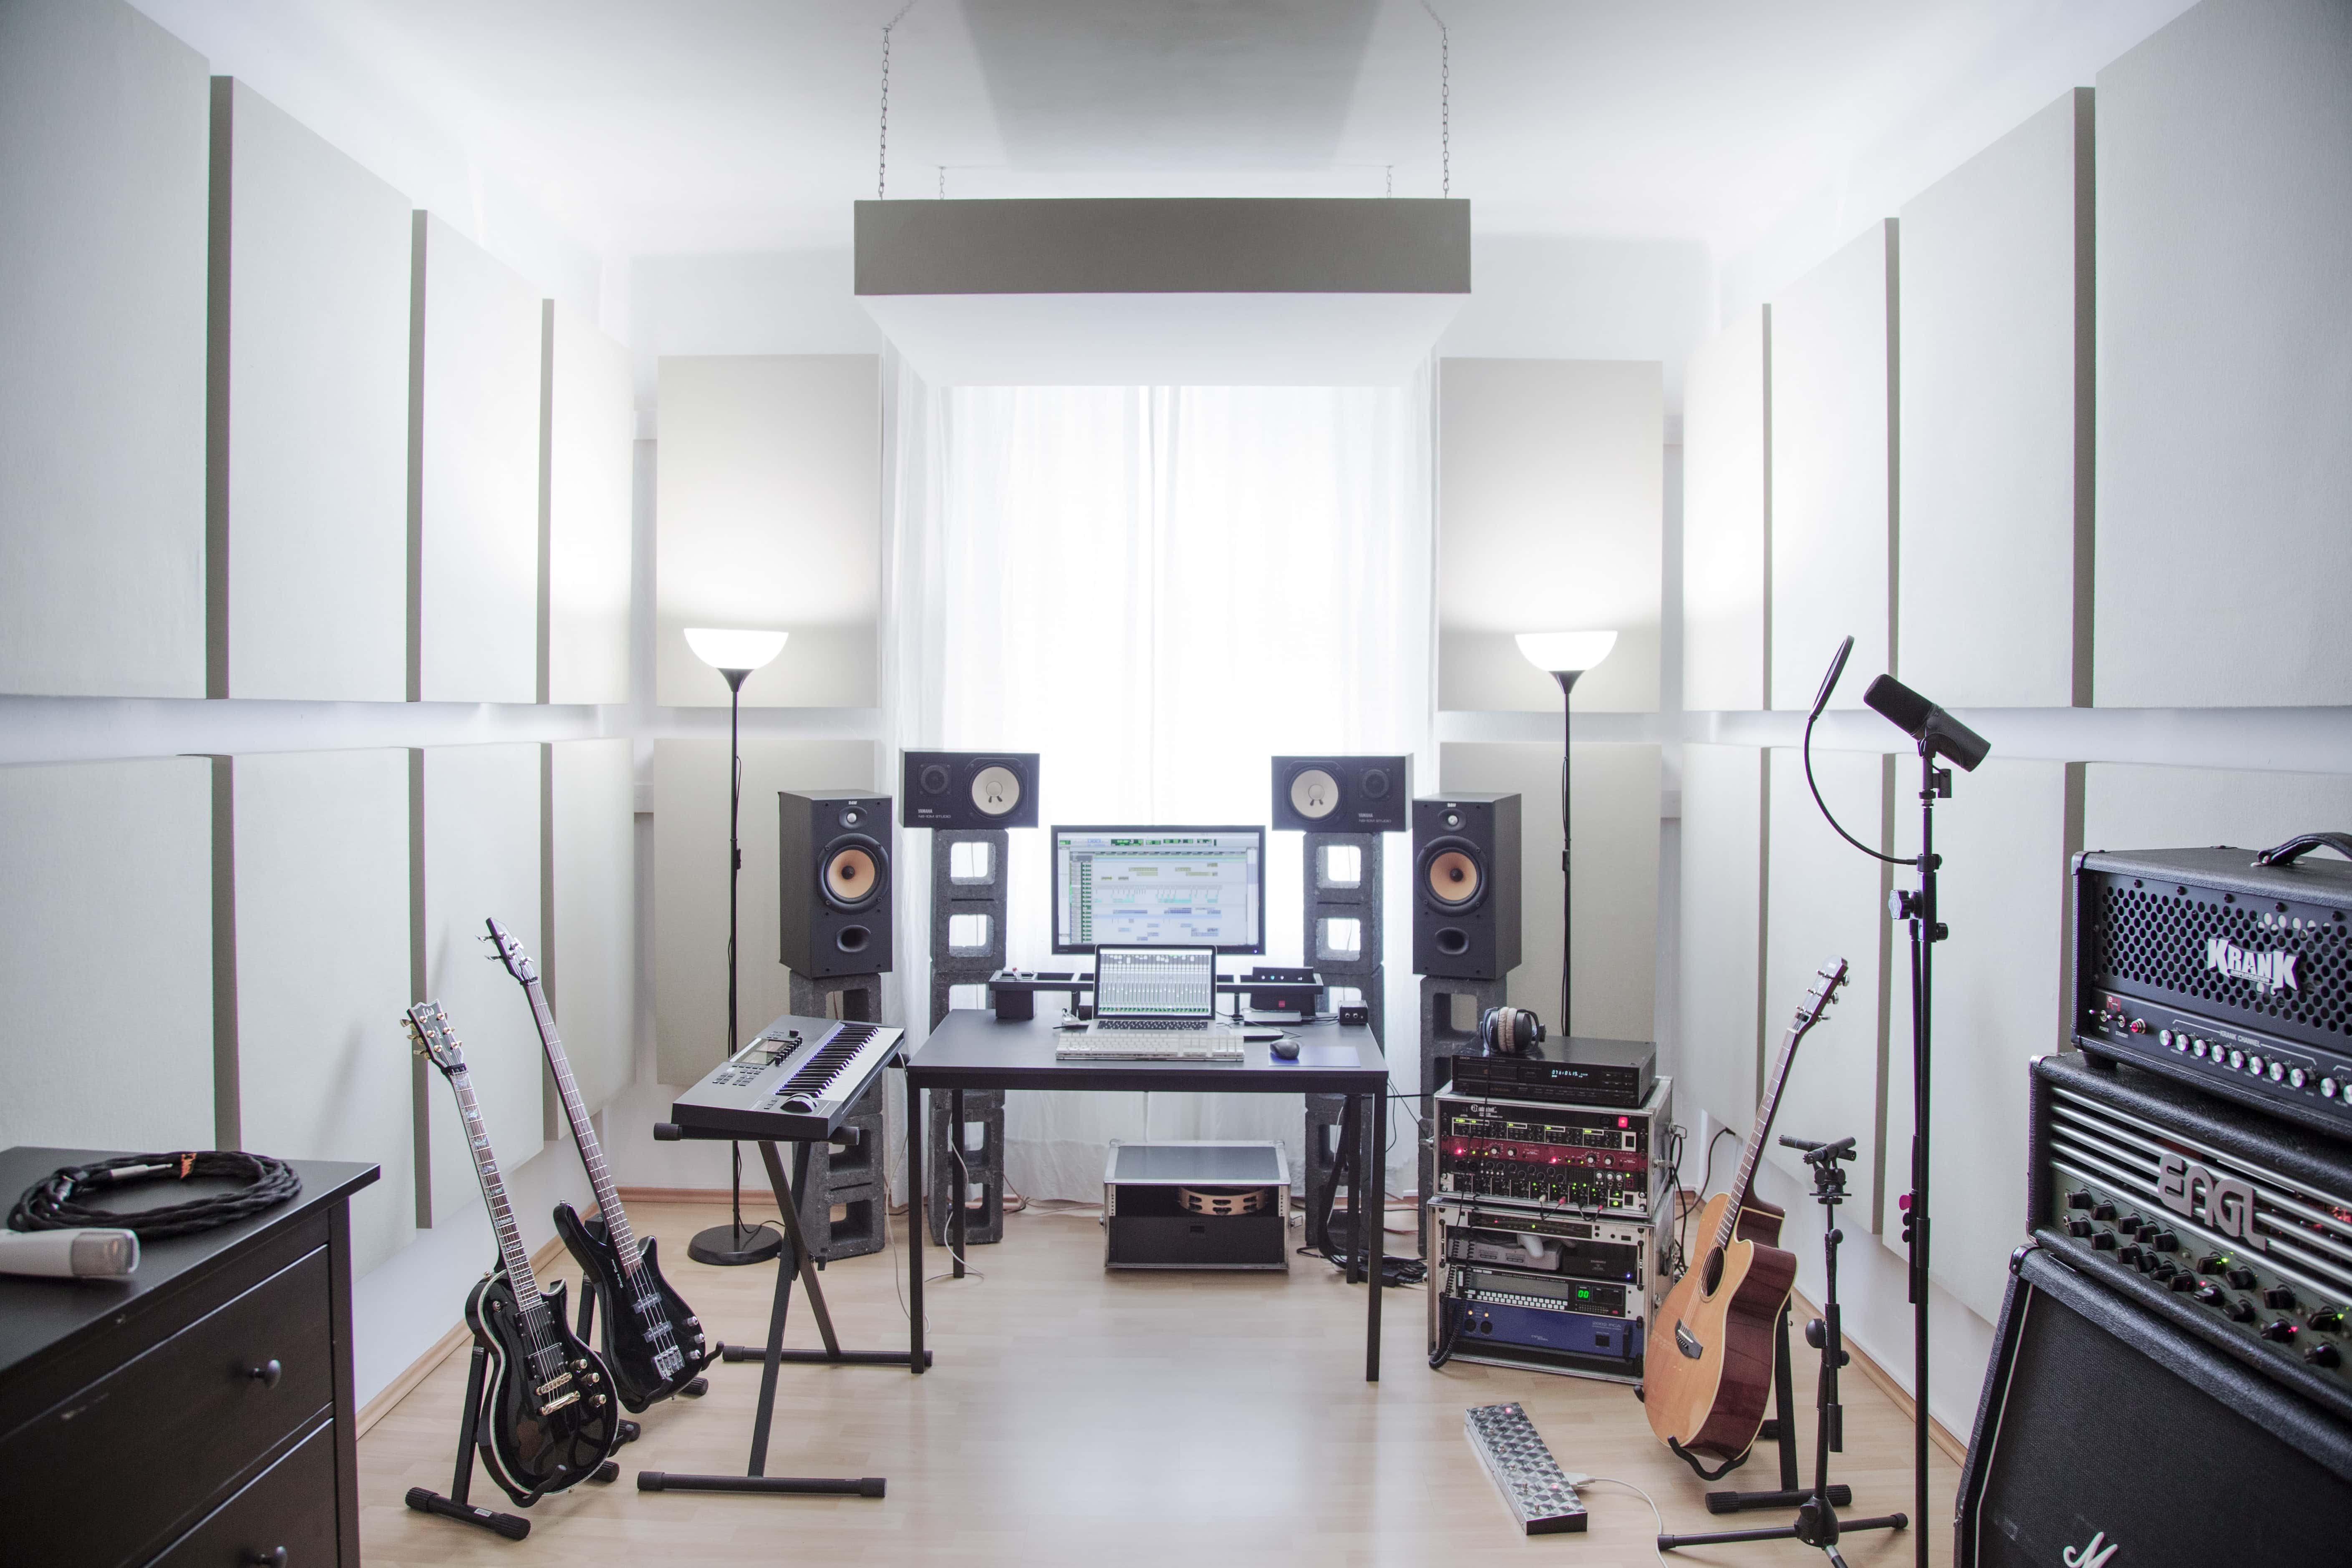 mixing and mastering studio in Vienna - by Moritz Grusch